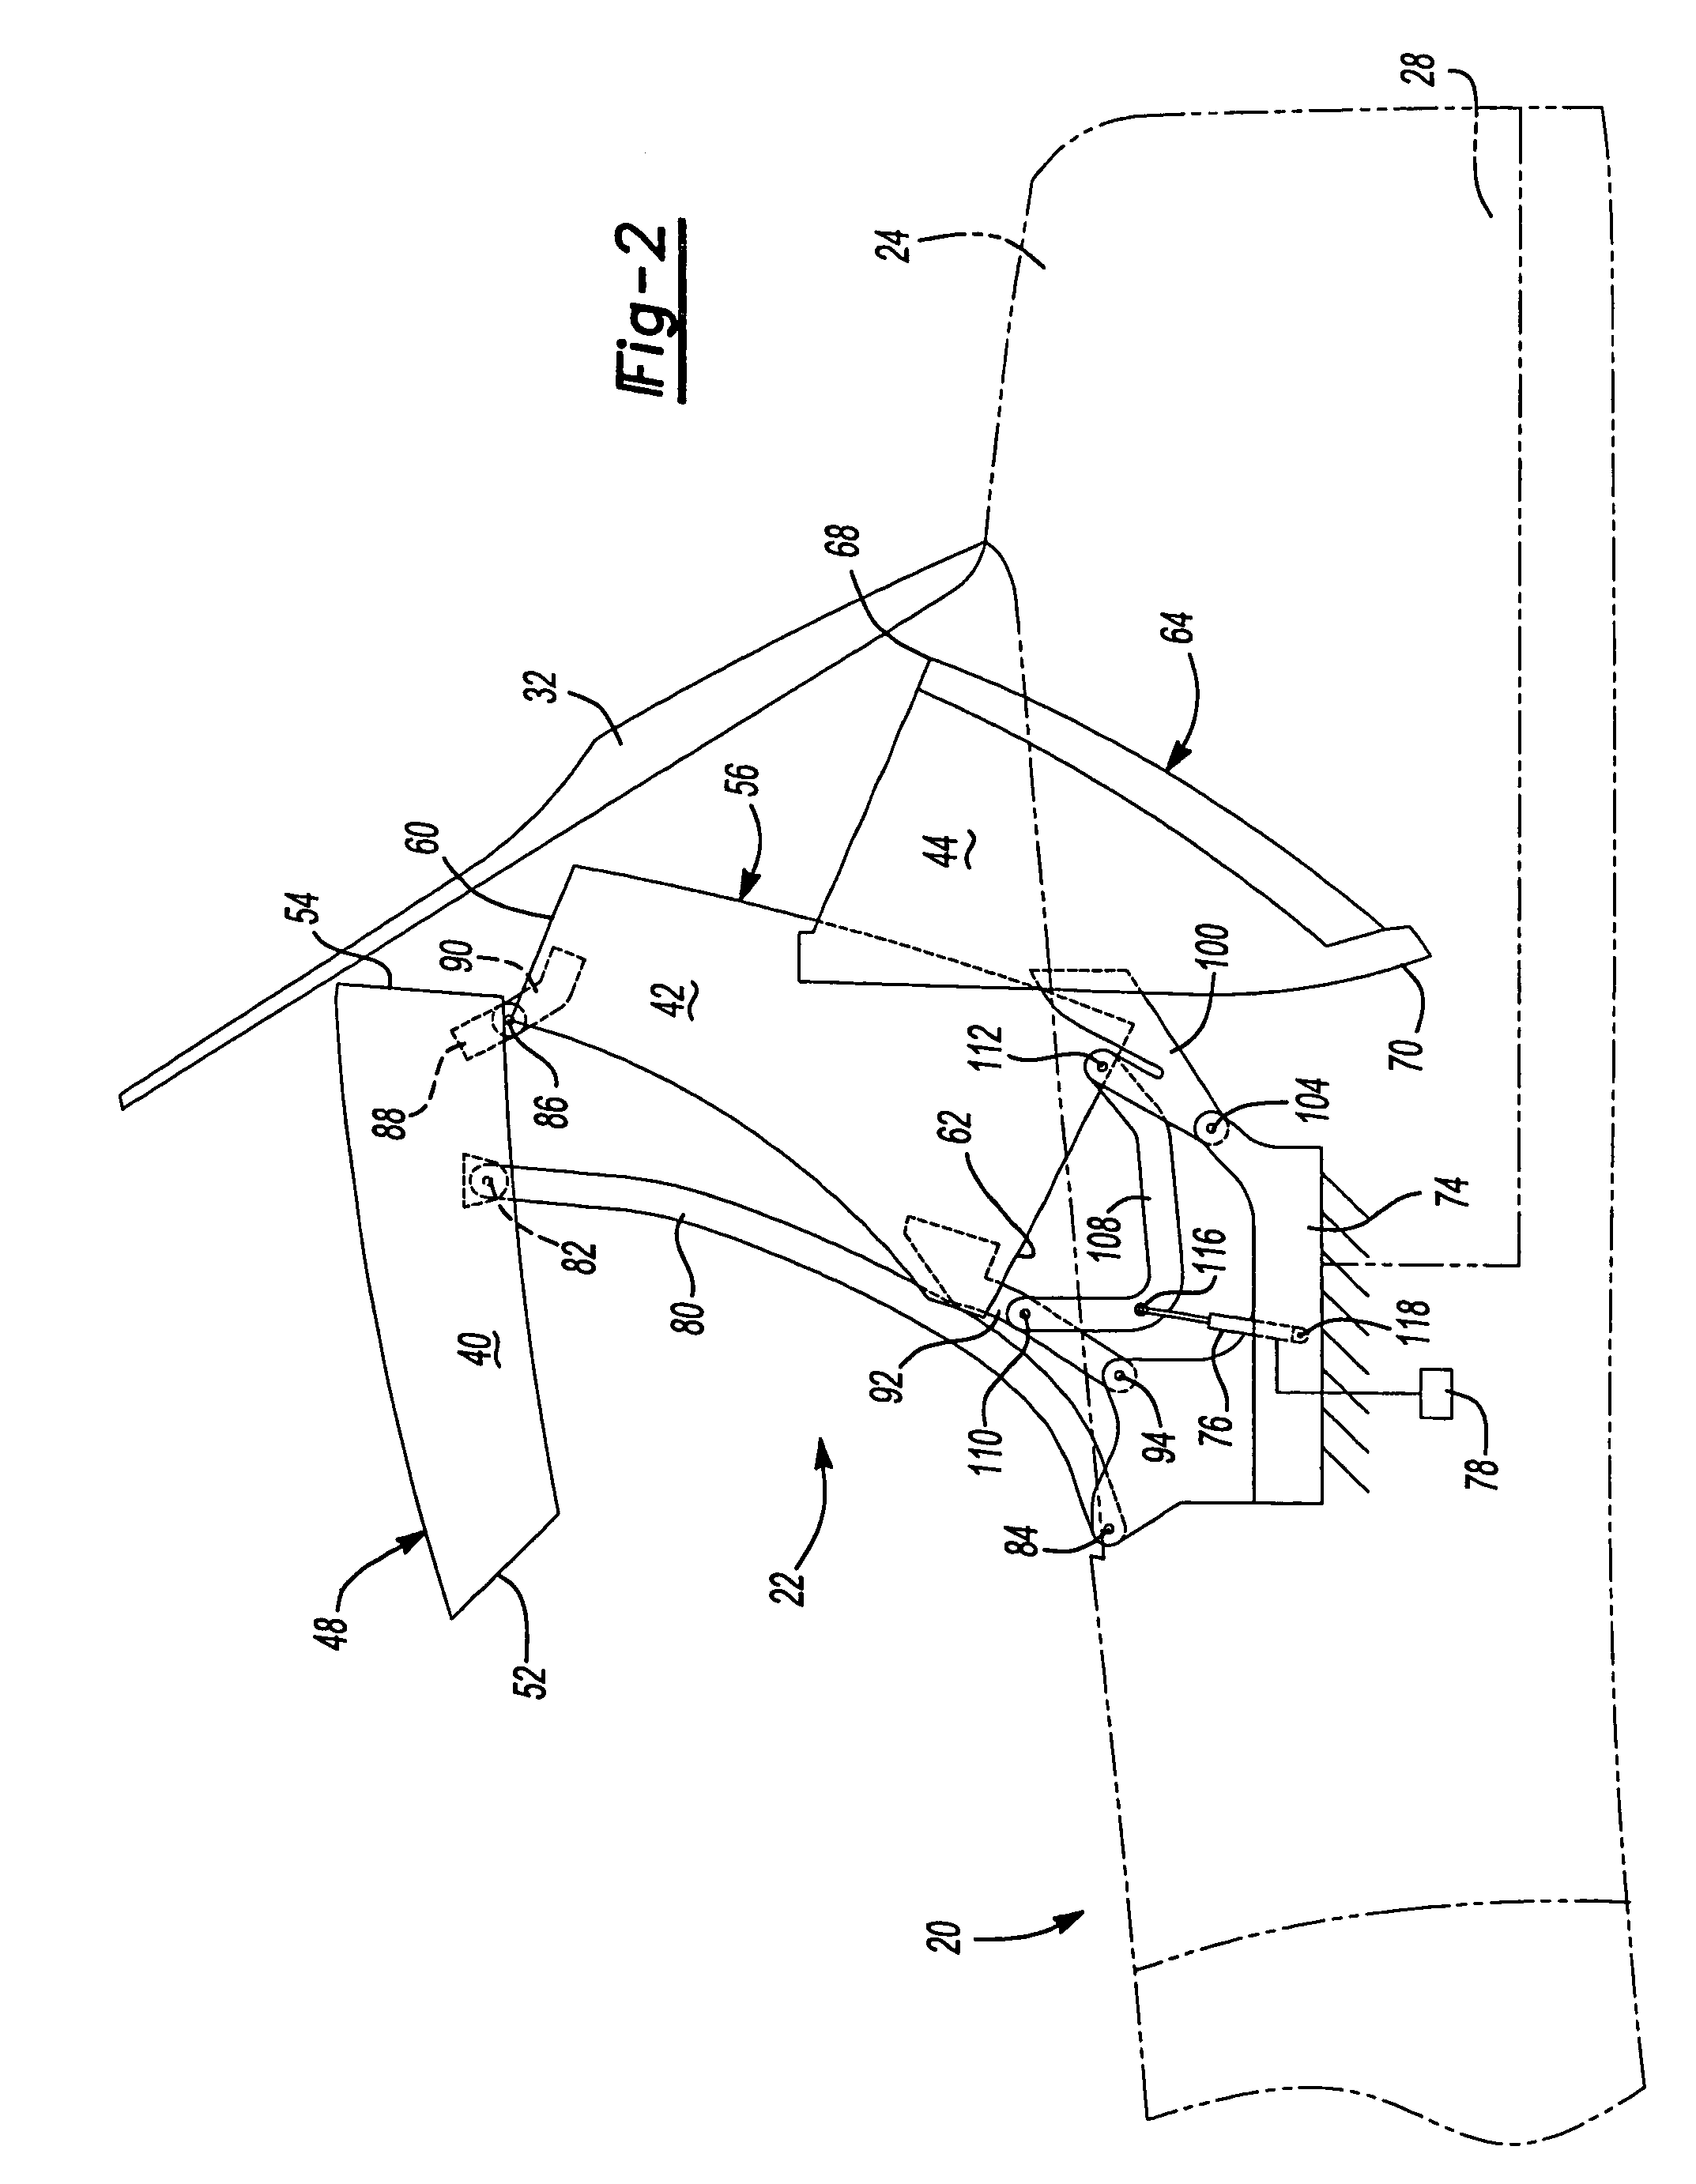 Wiring Diagram For 1952 Buick Roadmaster